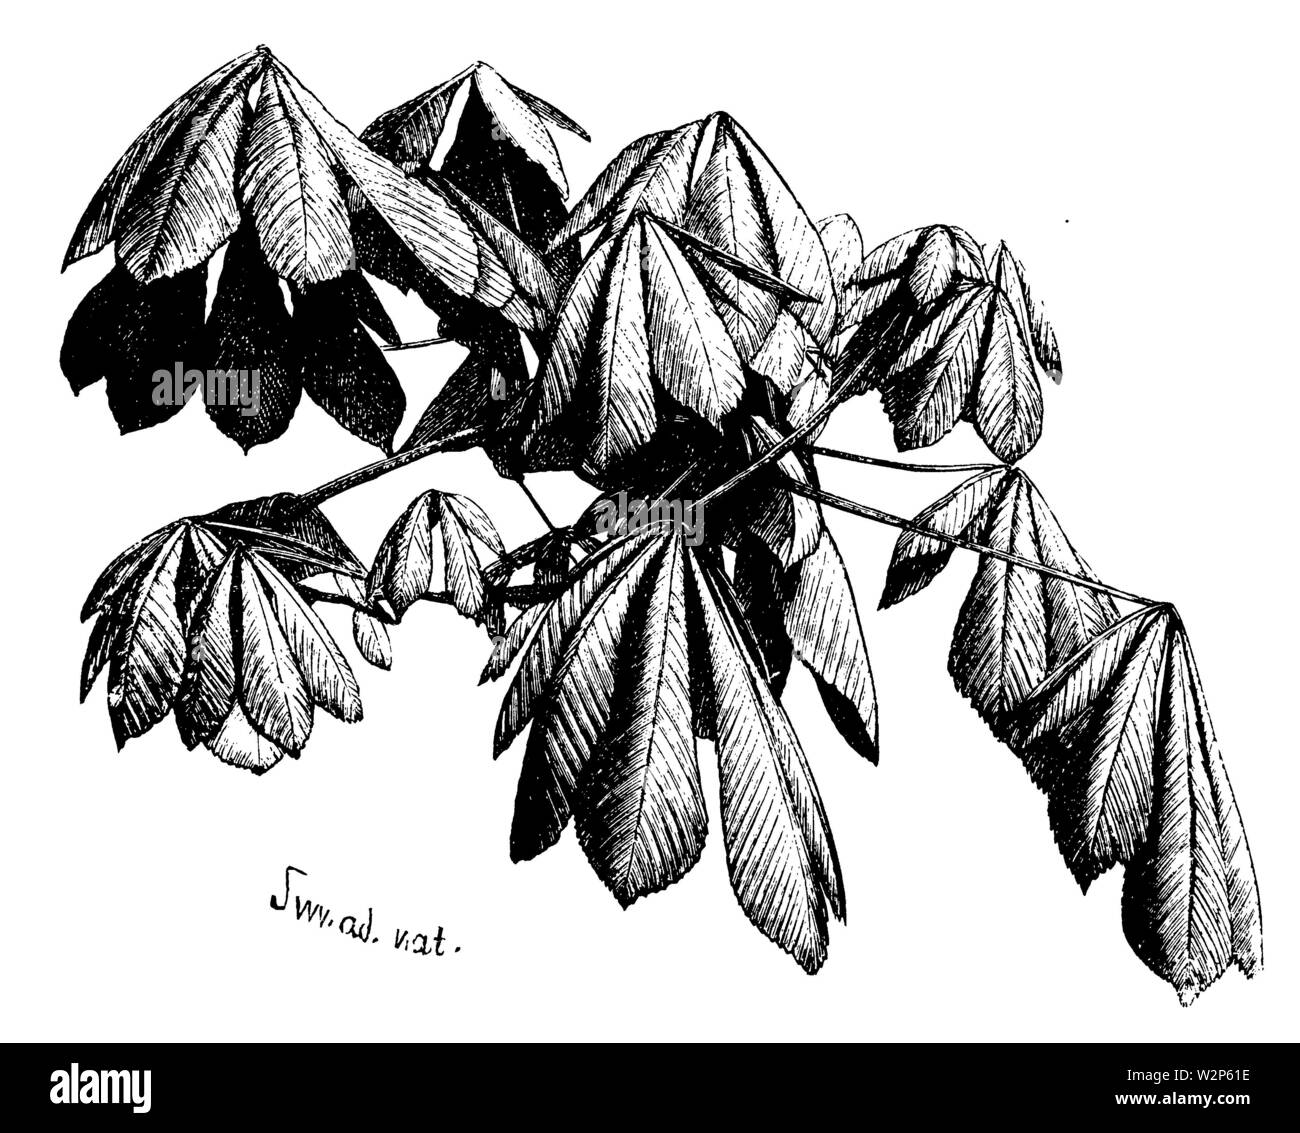 horse-chestnut, conker tree (Aesculus hippocastanum), leaves, Aesculus hippocastanum, S M (botany book, 1902) - Stock Image